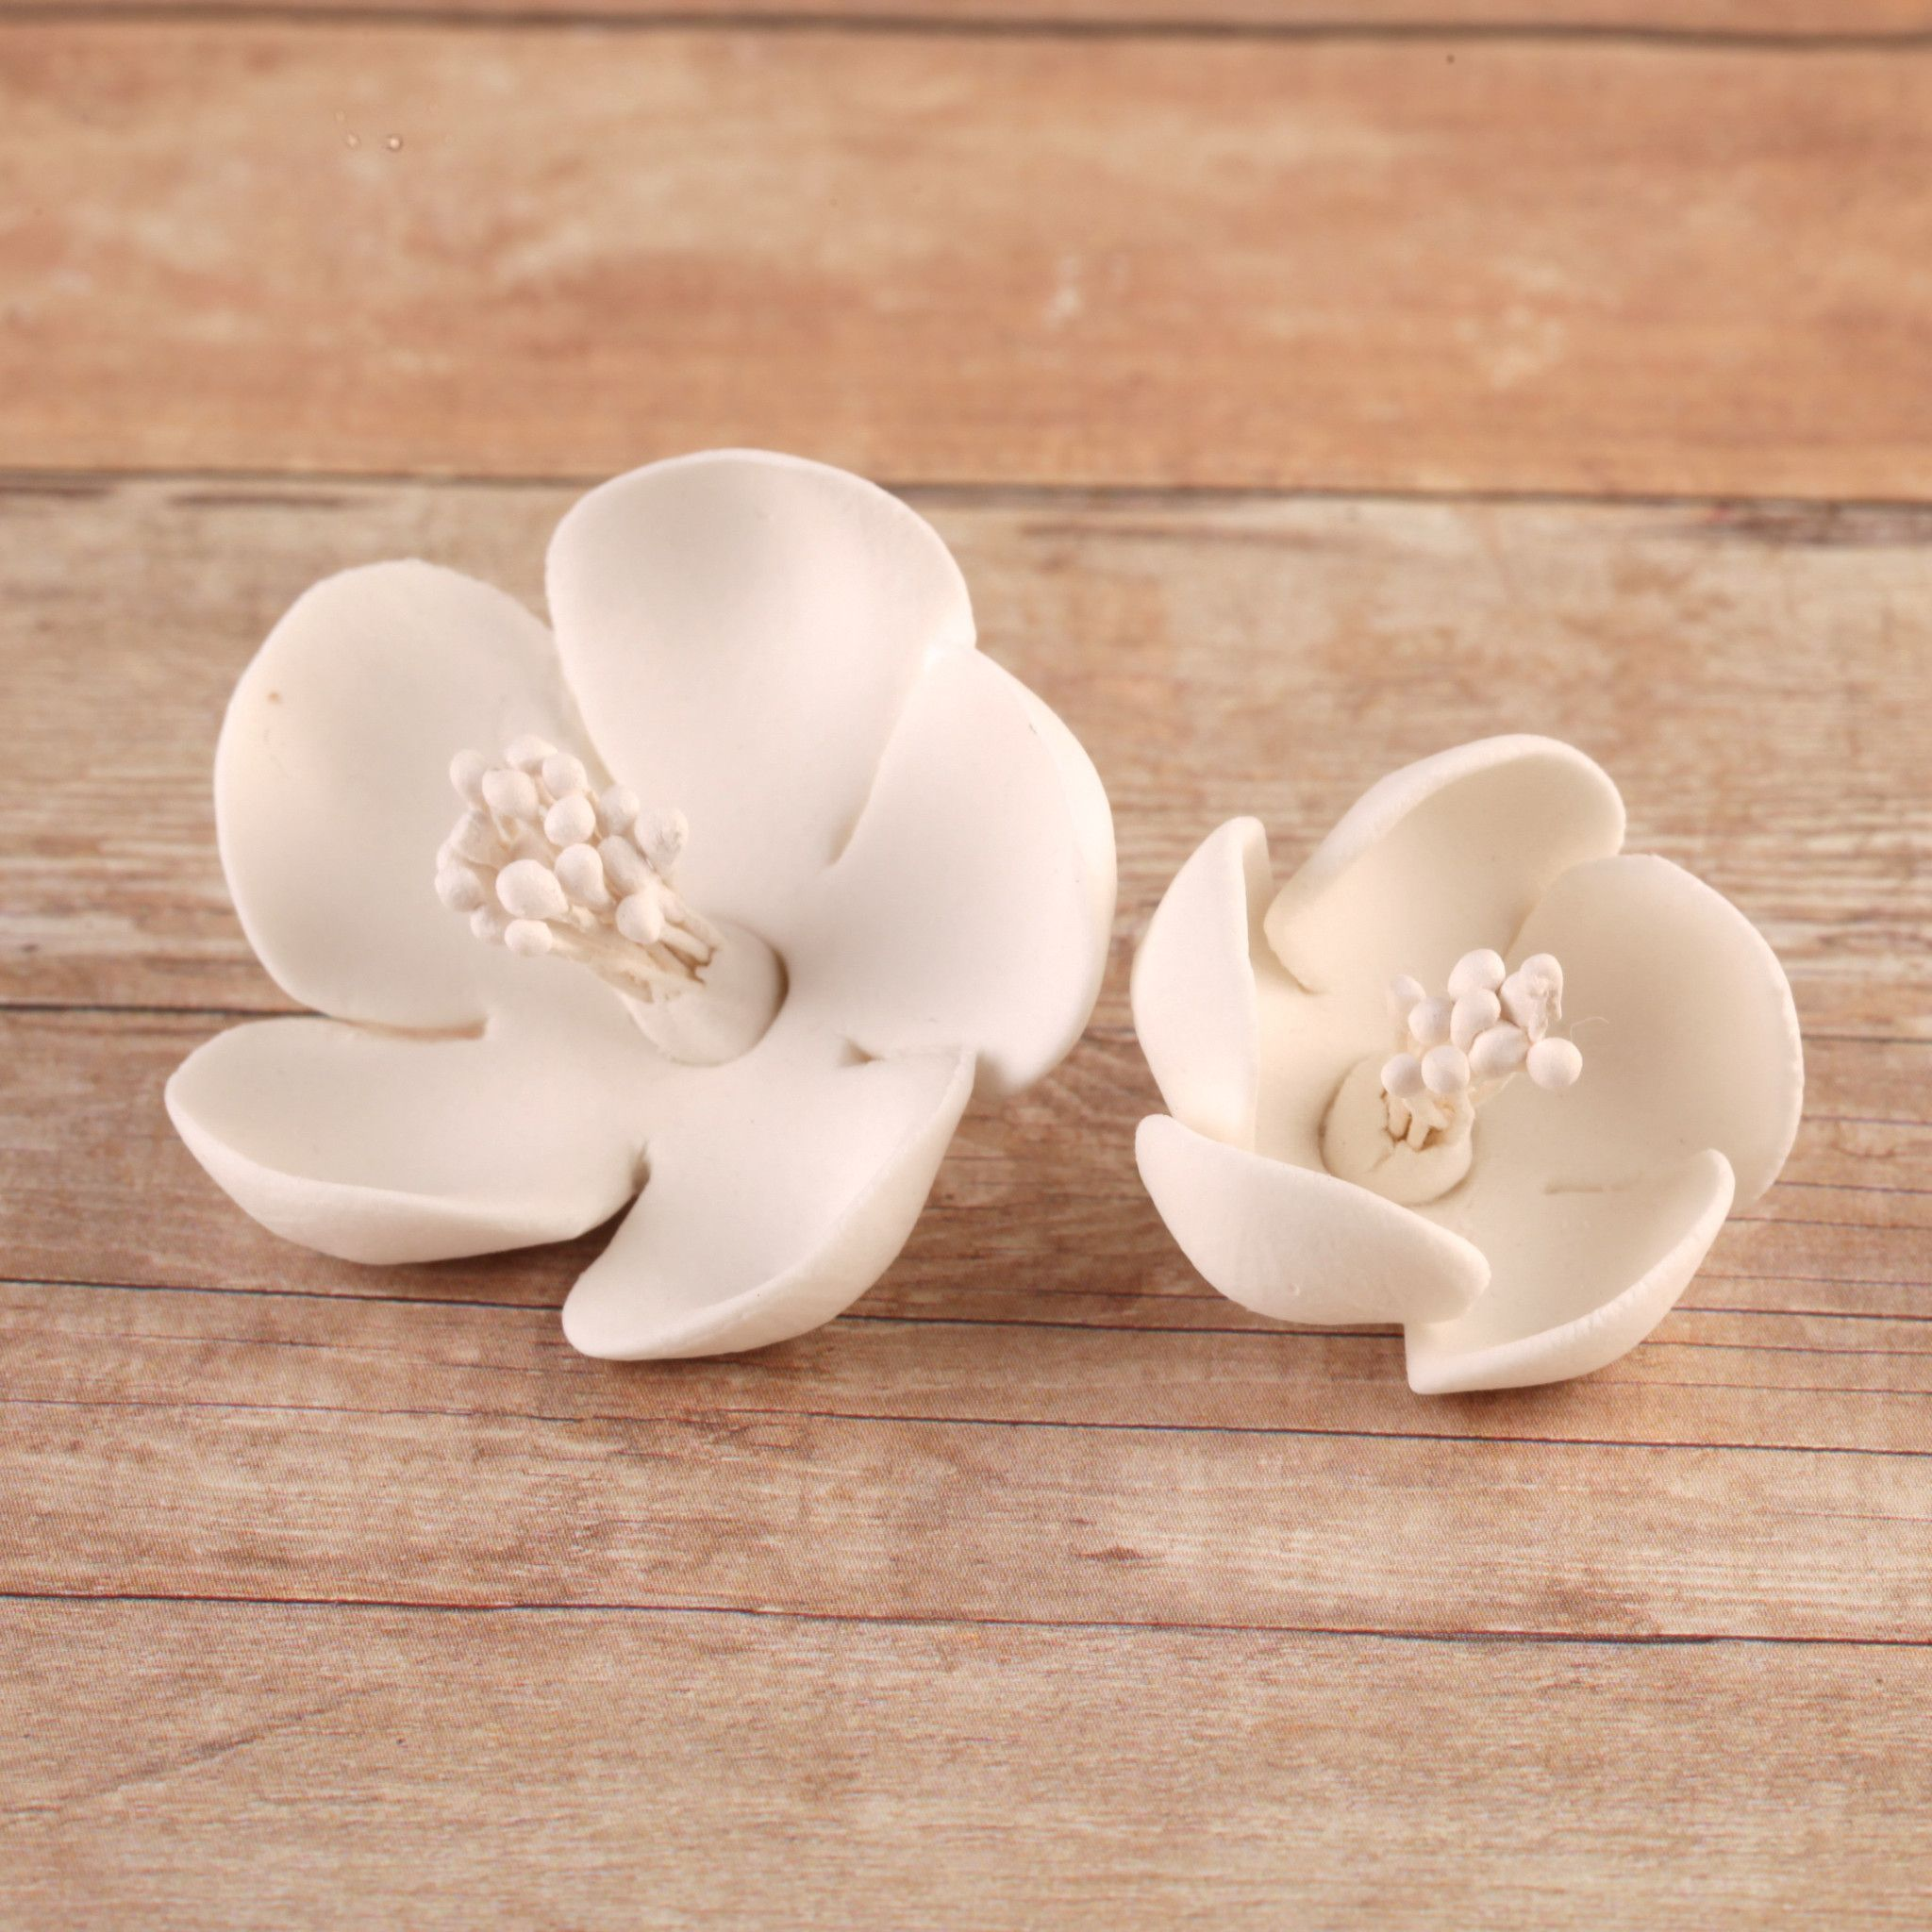 White Cherry Blossoms Unwired Edible Cake Decorations Childrens Birthday Cakes Fondant Wedding Cakes